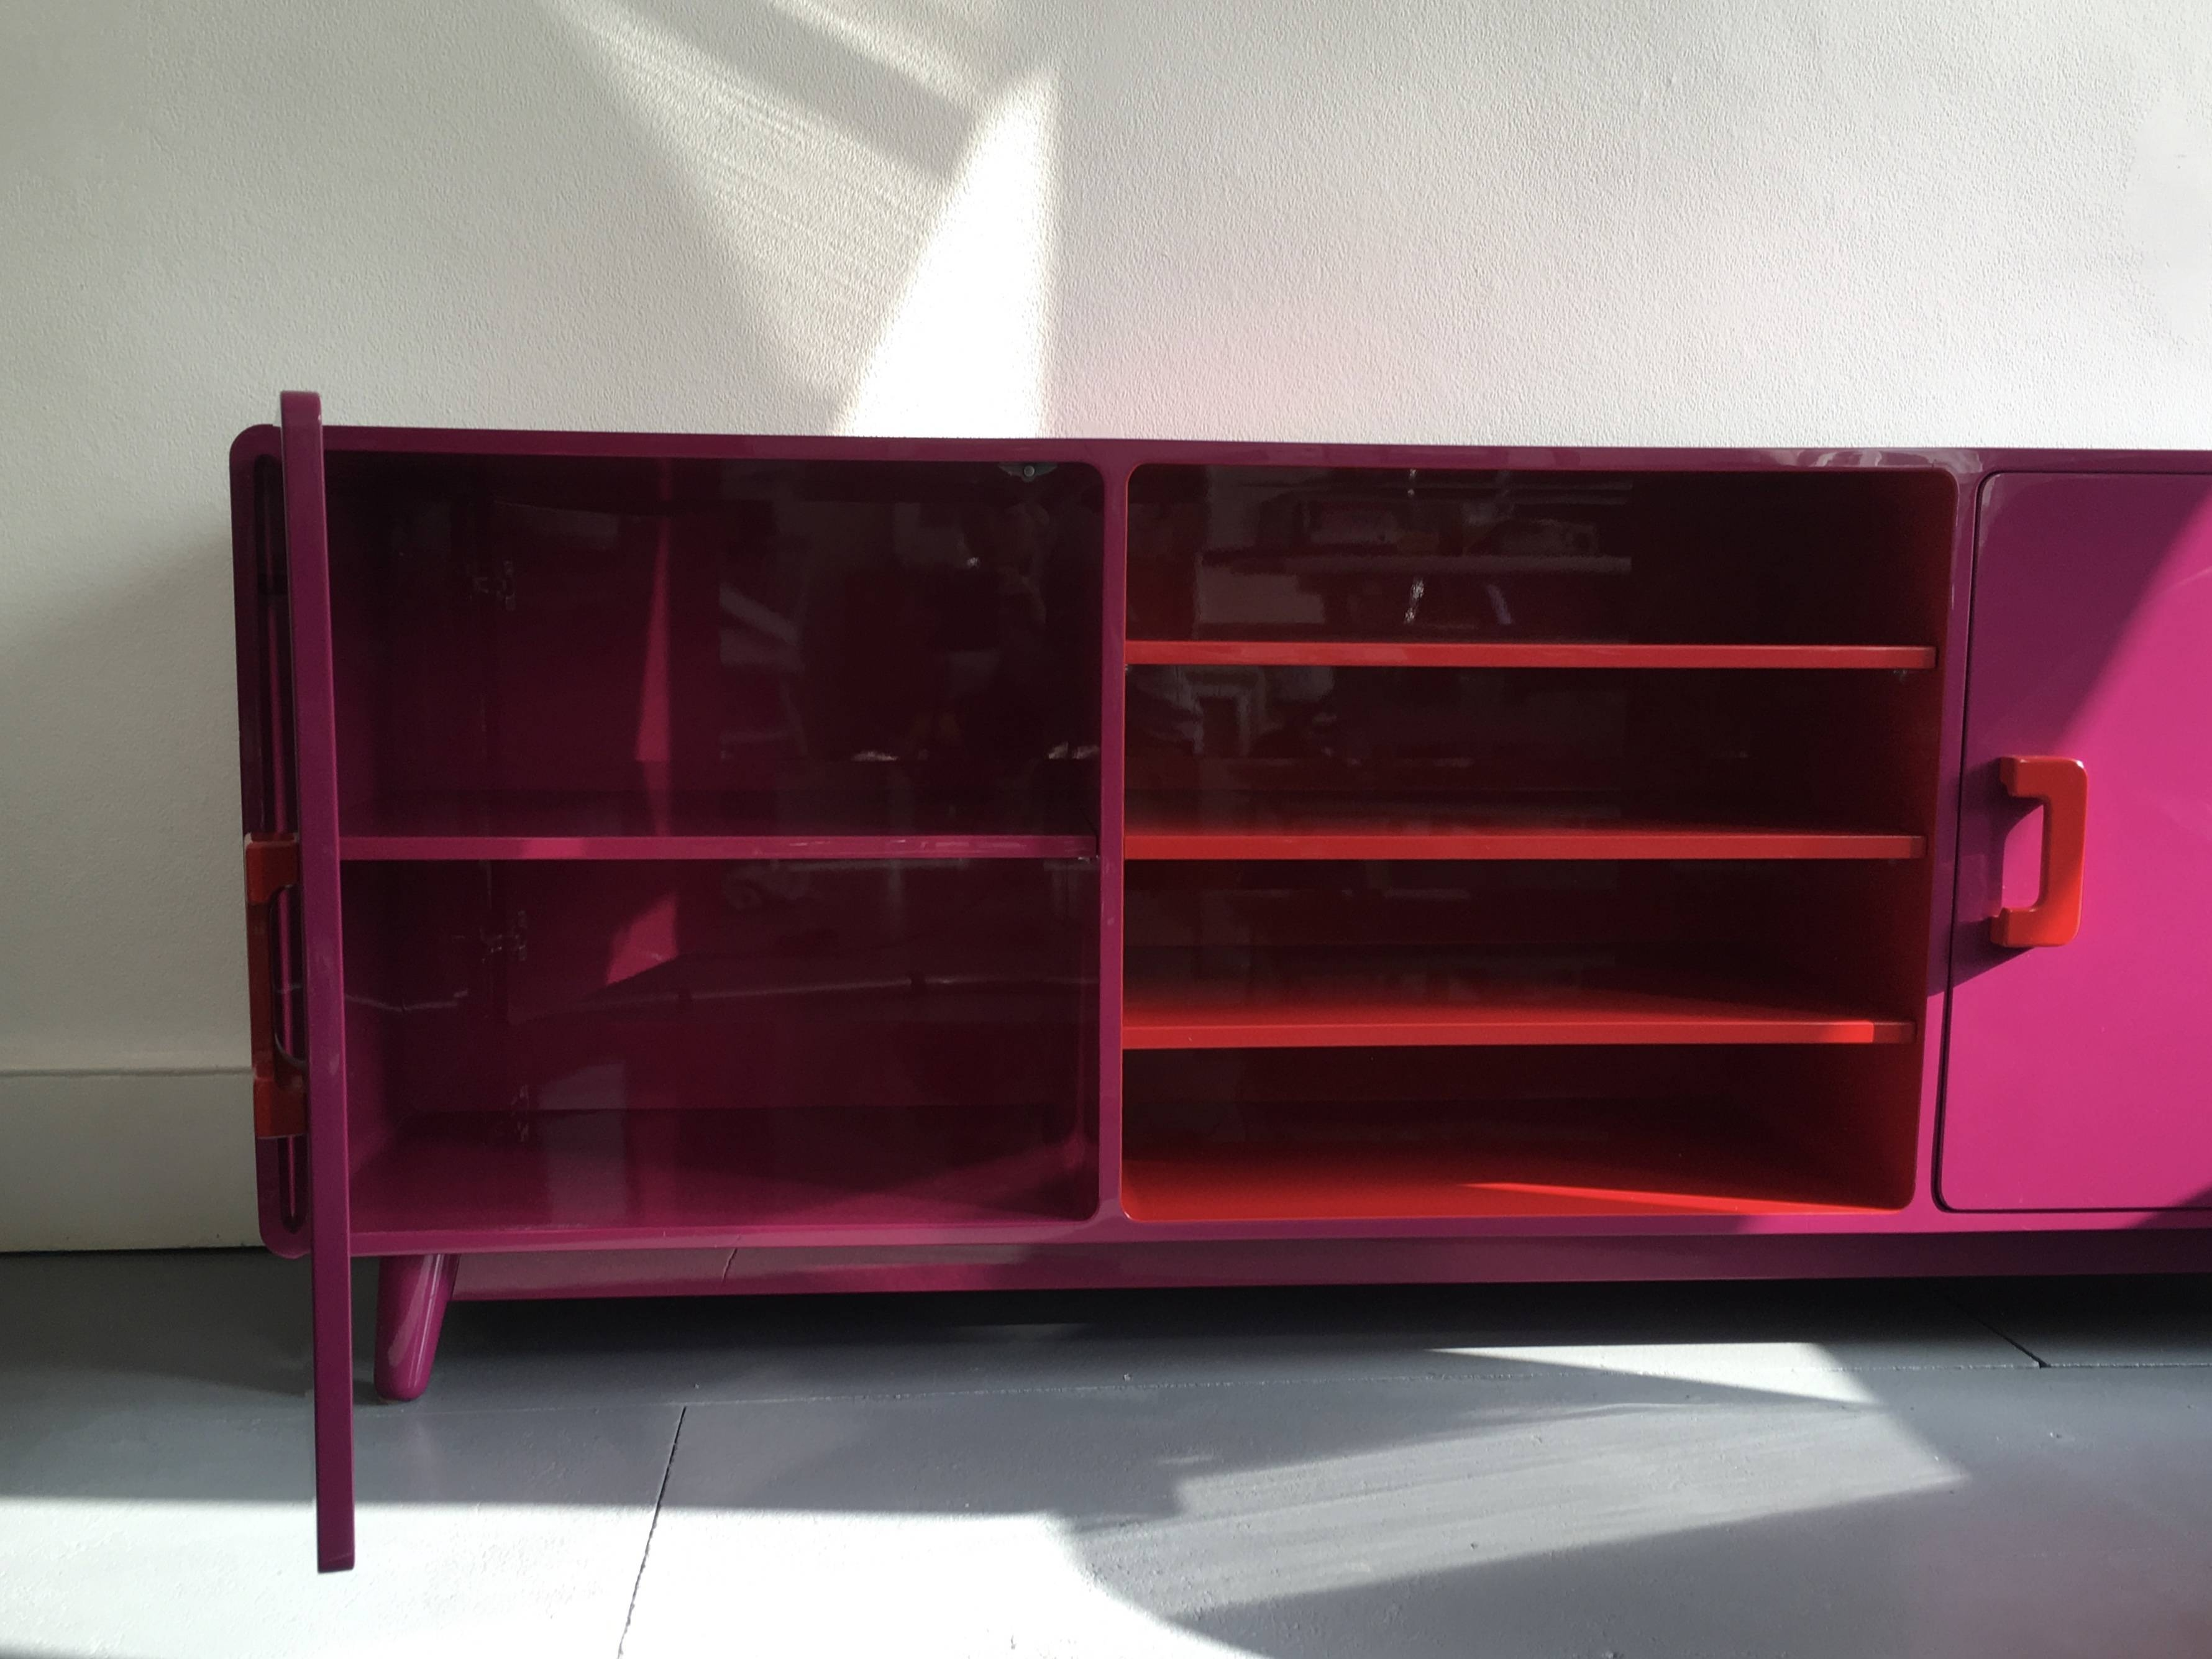 60's Inspired High Gloss Lacquered Sideboard In Hot Pink And Red in Red High Gloss Sideboards (Image 3 of 30)